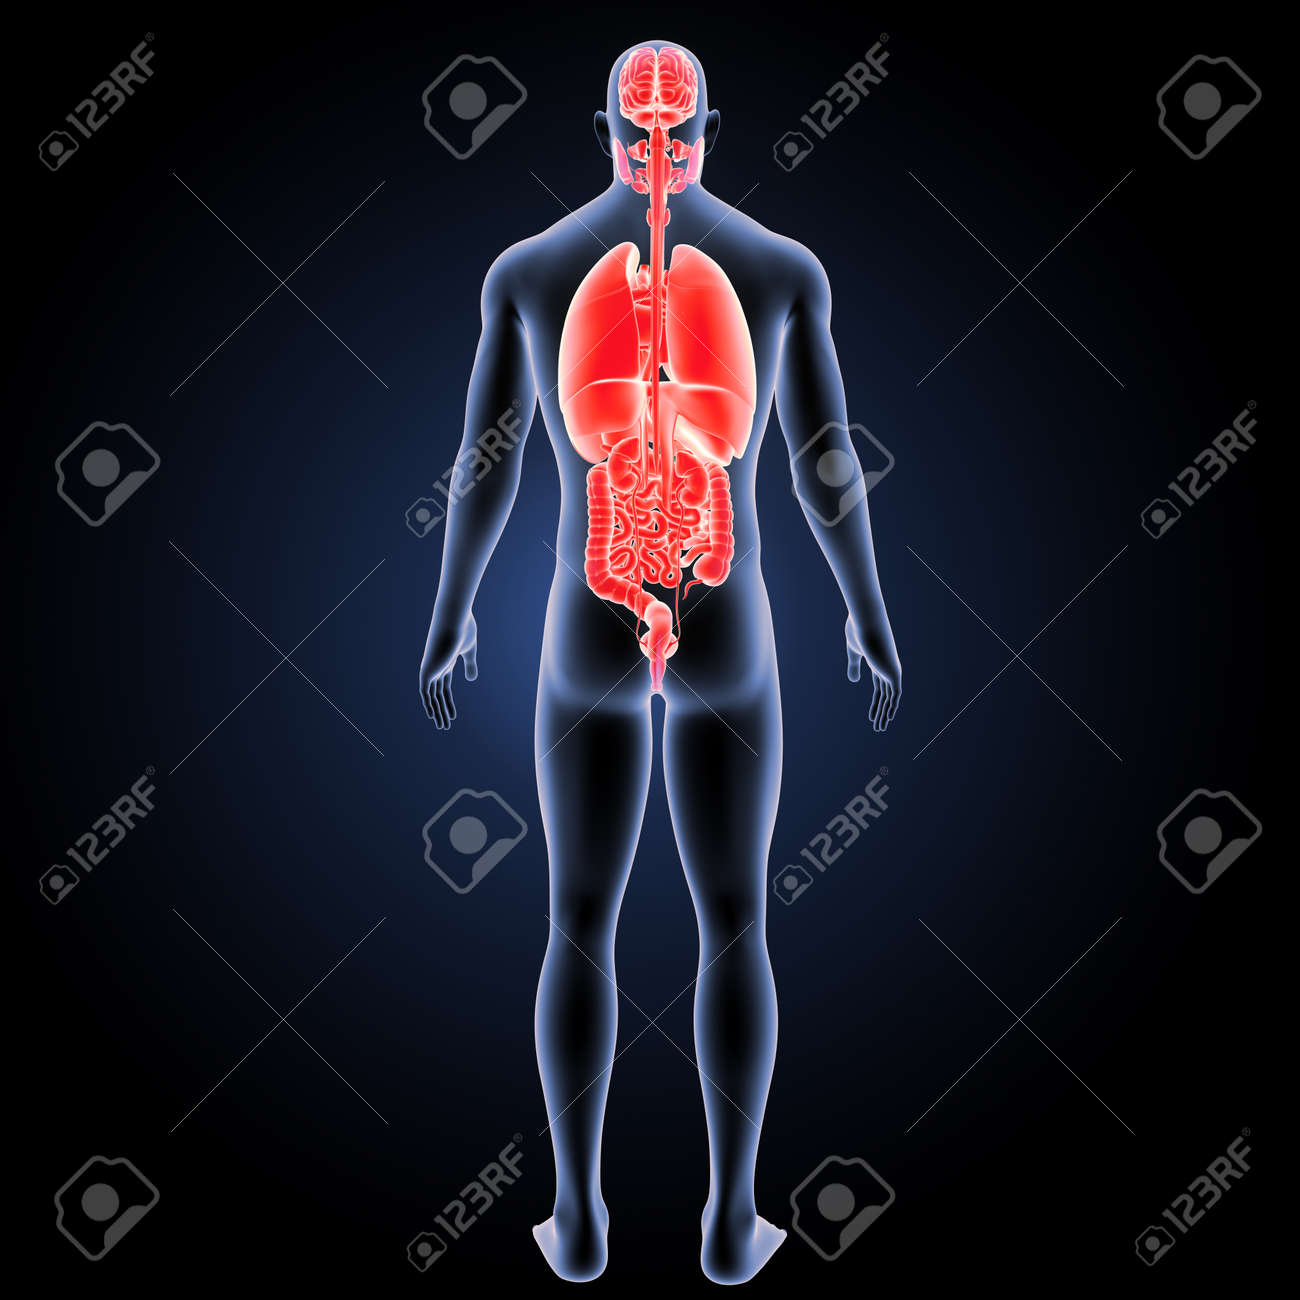 Human Organs With Body Posterior View Stock Photo, Picture And ...